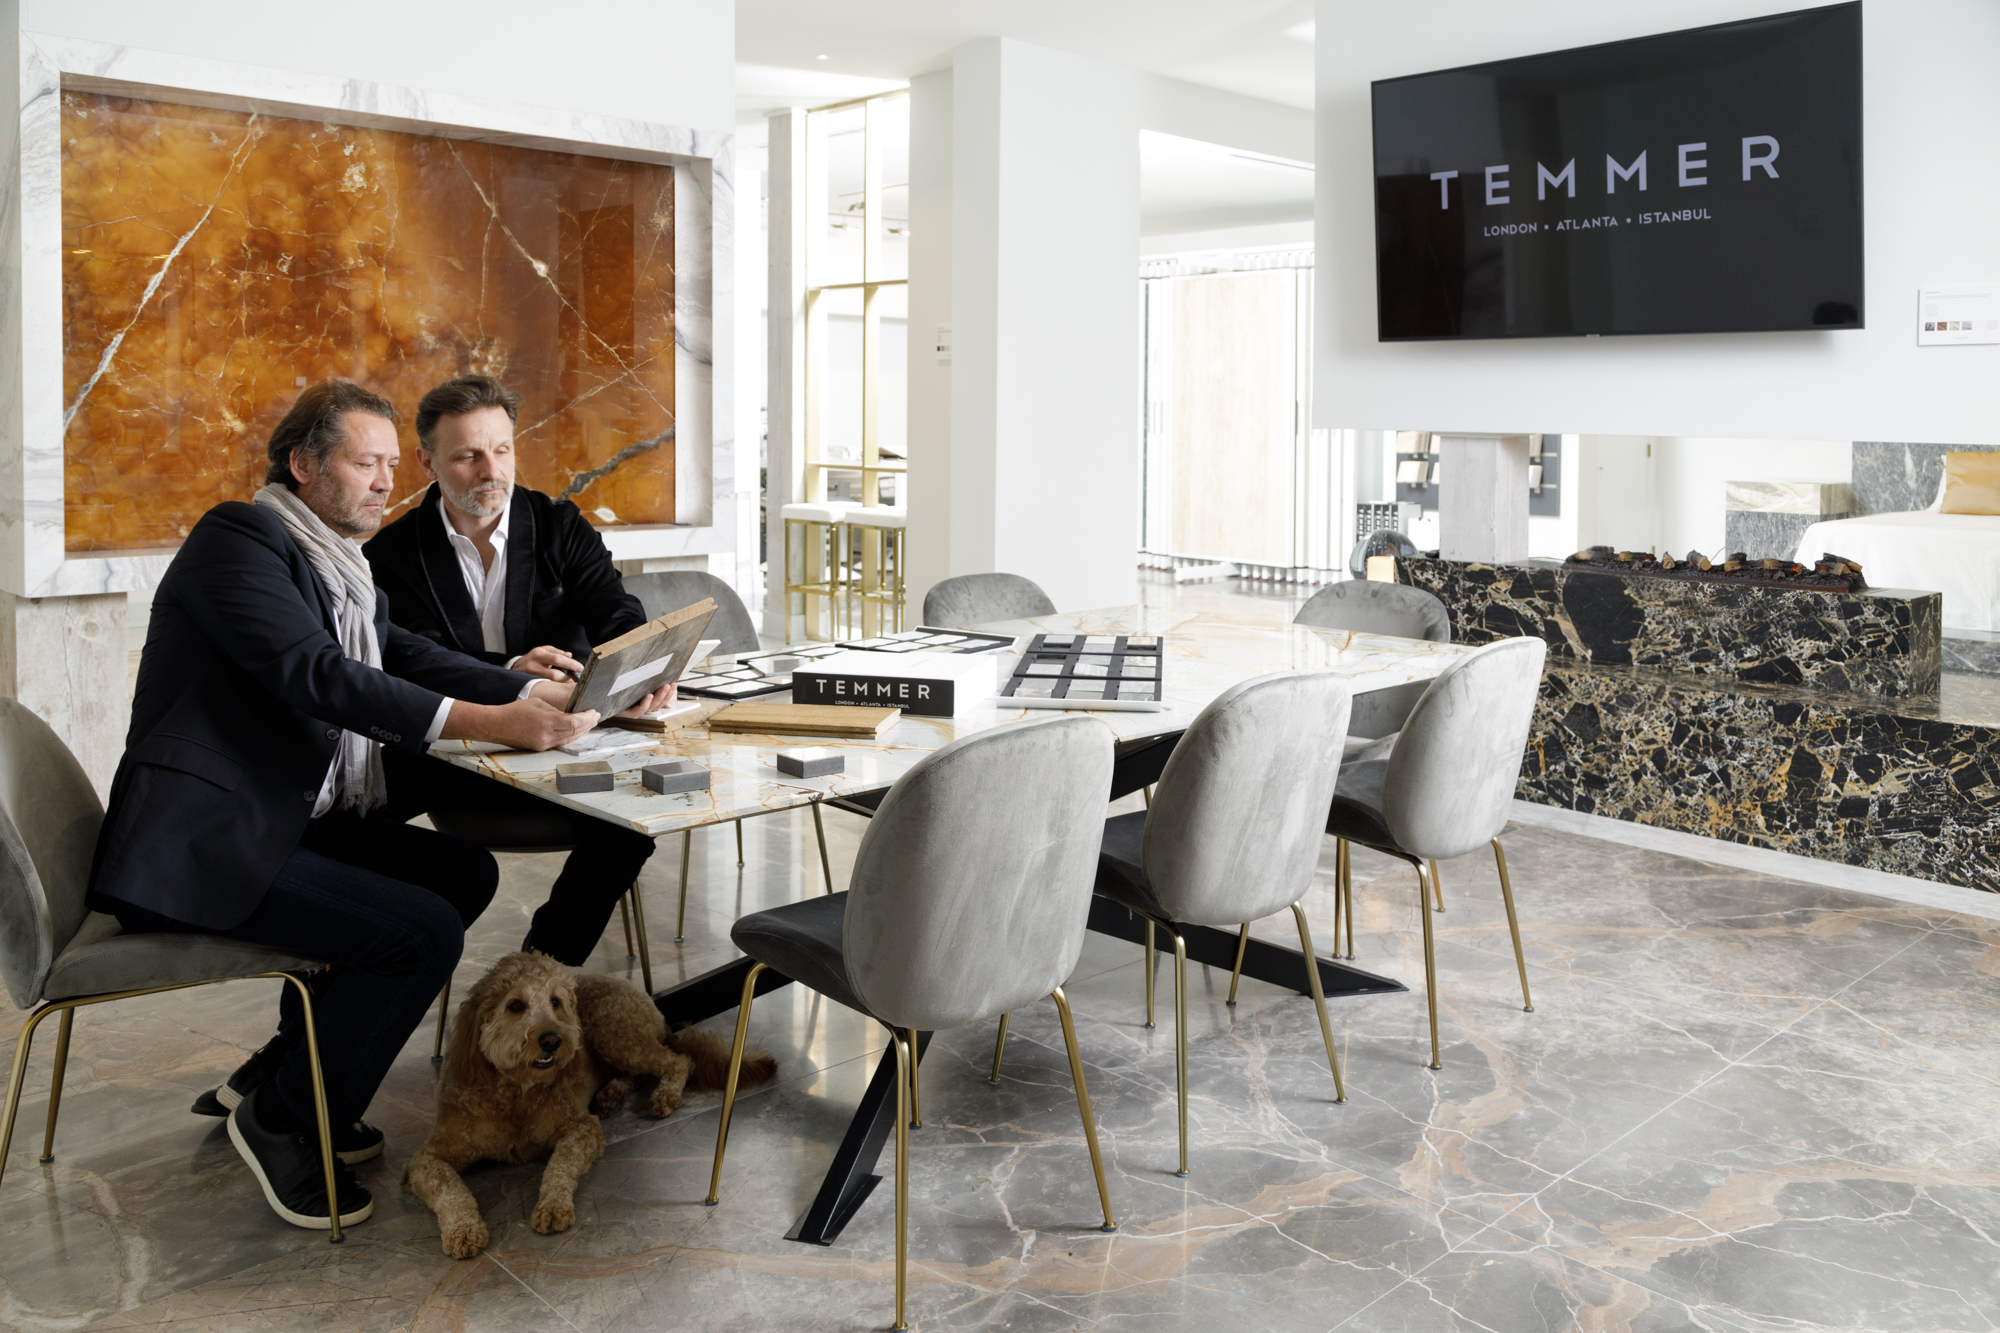 Patrick Heagney photographs two sophisticated designers and their dog surrounded by Temmer Marble